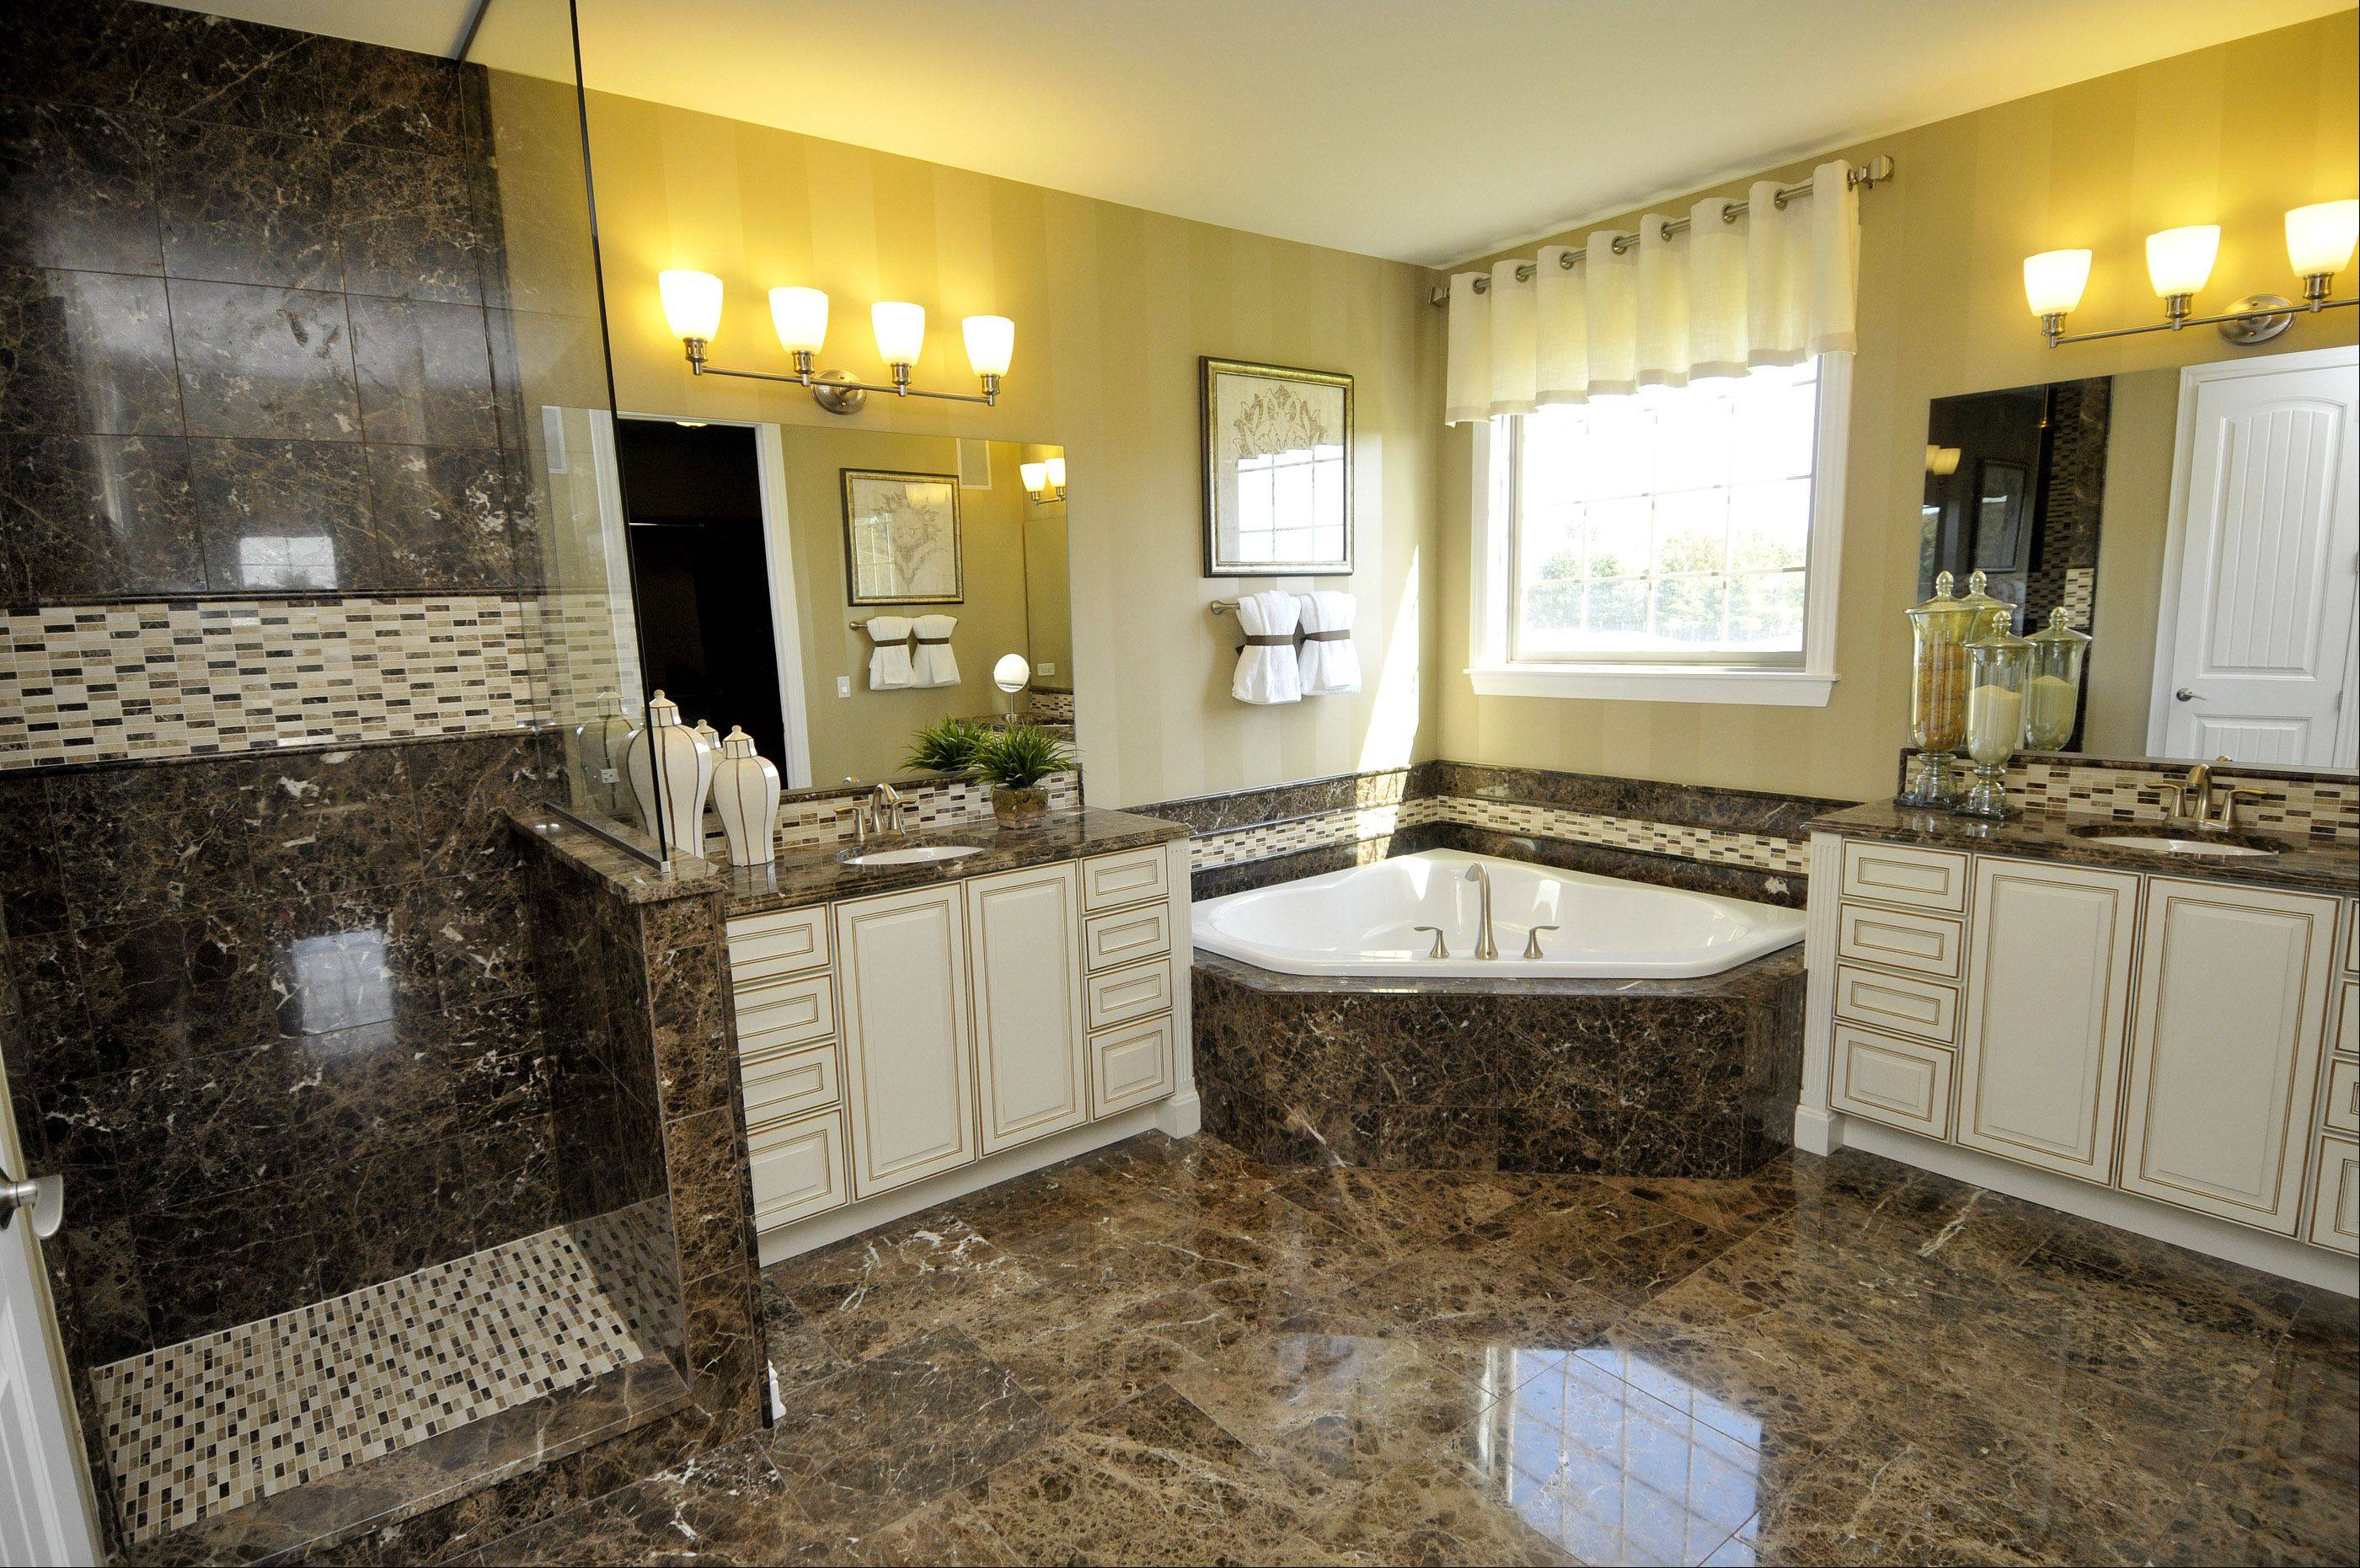 The first-floor master bathroom has a corner soaking tub and a walk-in shower with ceramic tile surround.